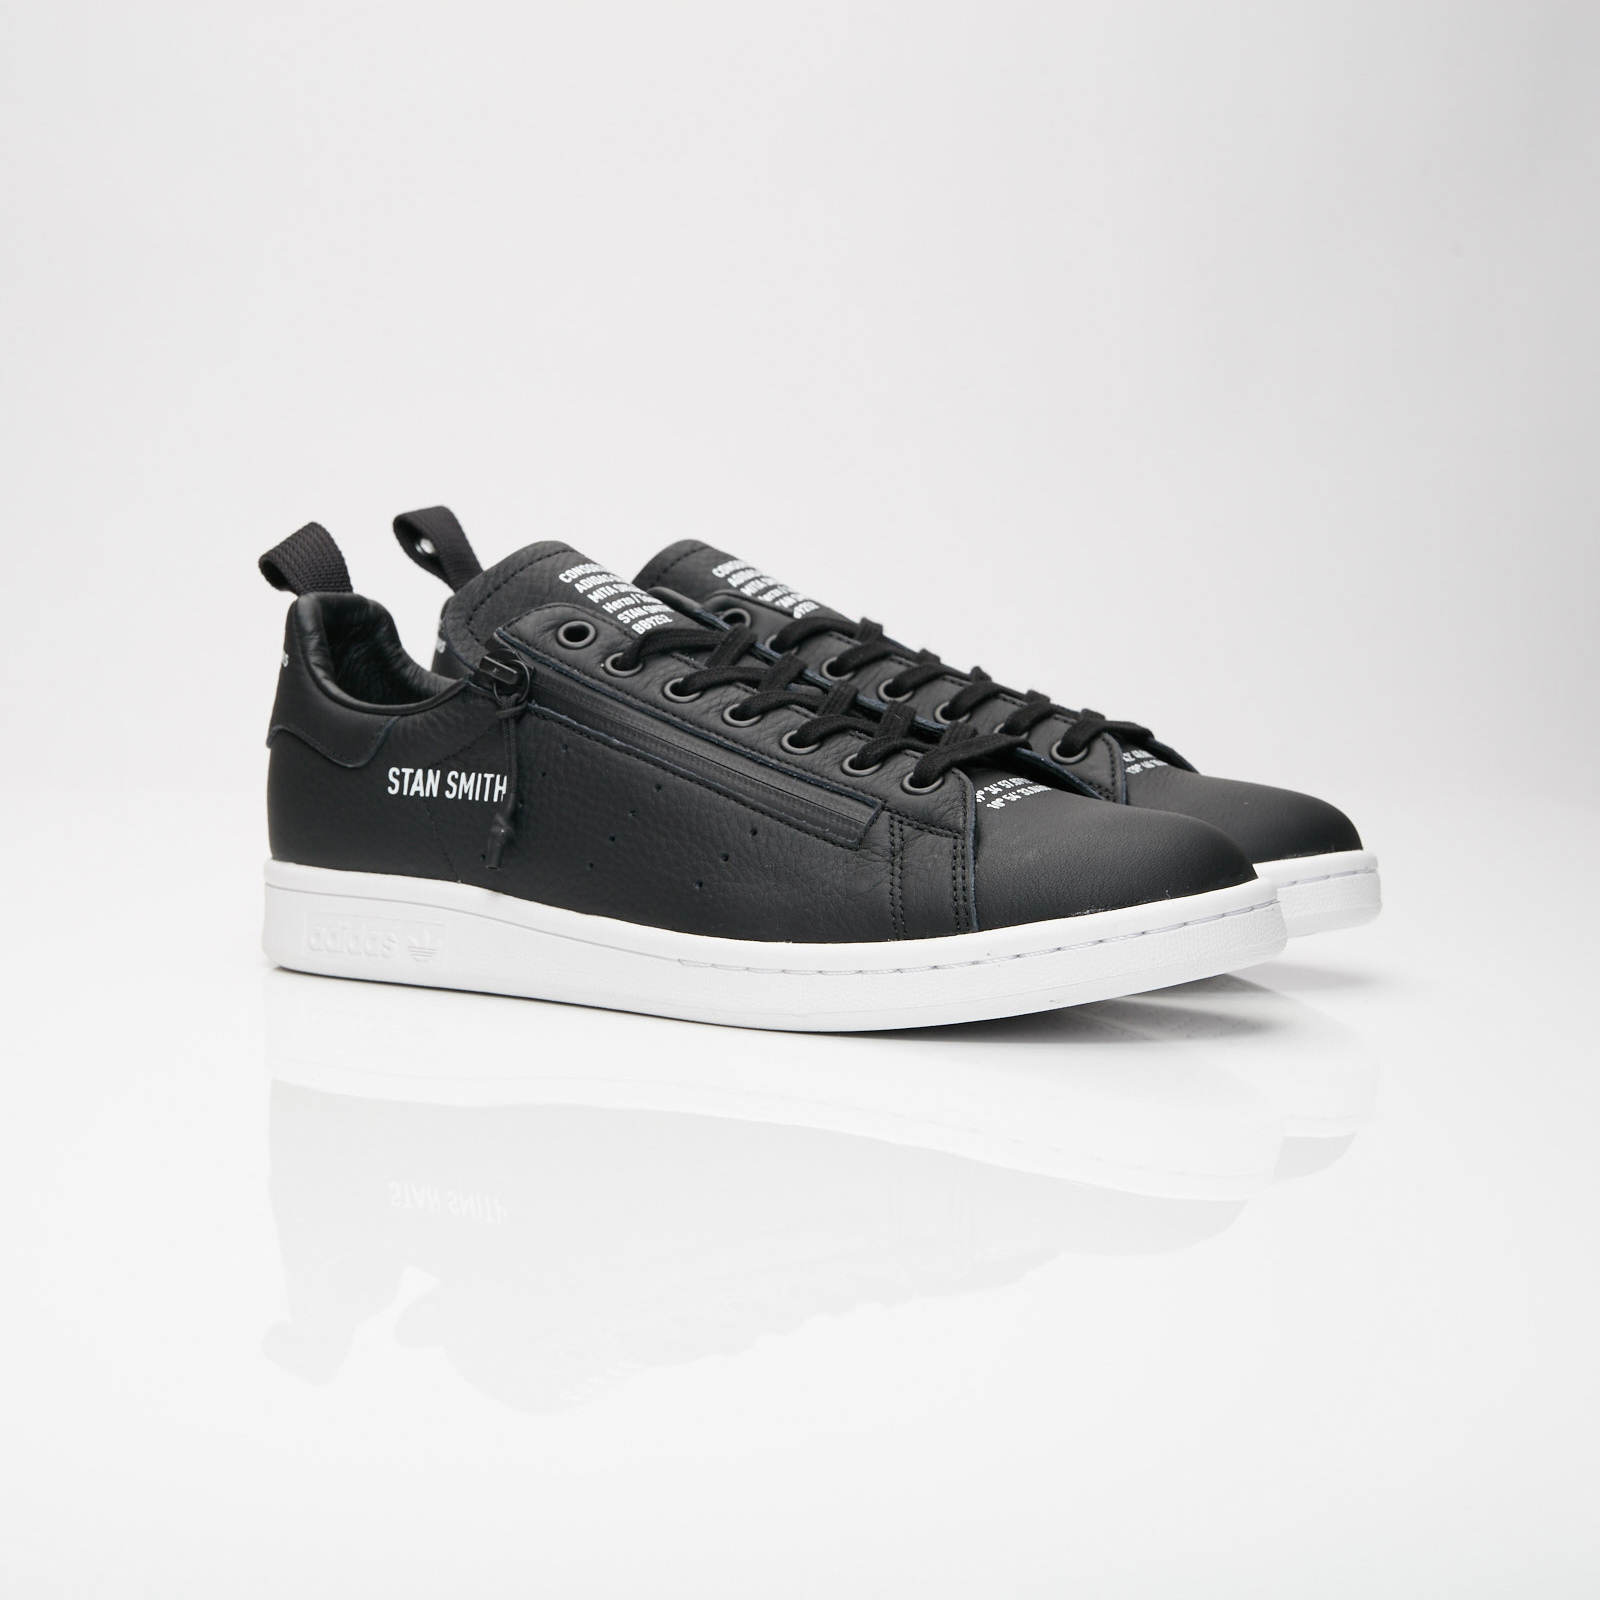 timeless design 0887c 756c9 adidas Stan Smith MITA - Bb9252 - Sneakersnstuff | sneakers ...